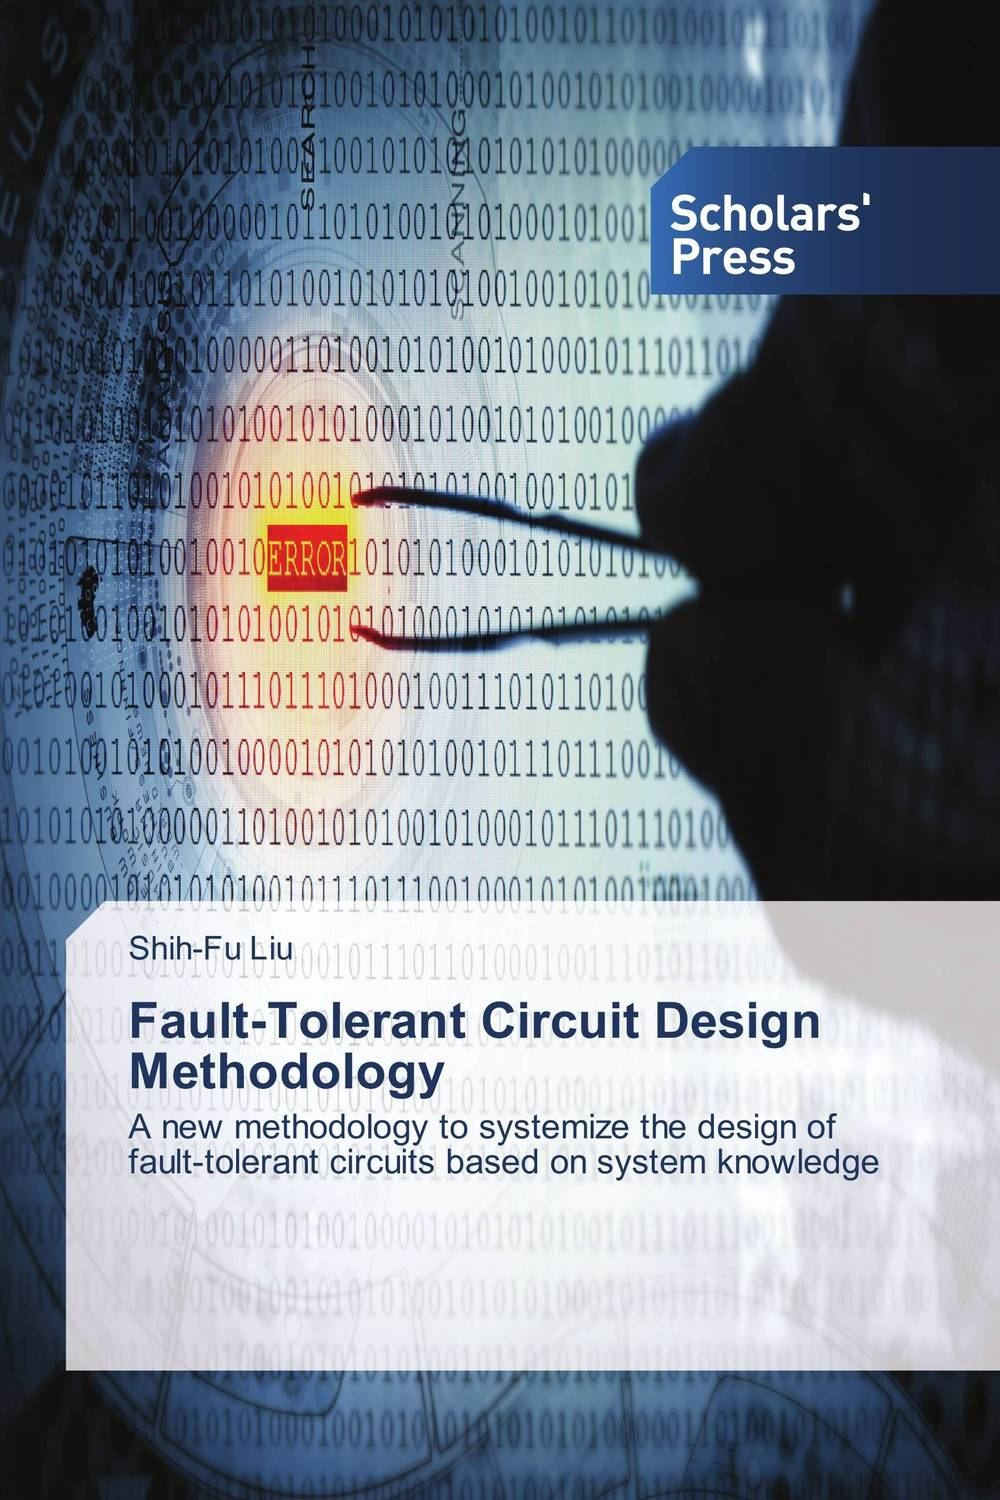 Fault-Tolerant Circuit Design Methodology